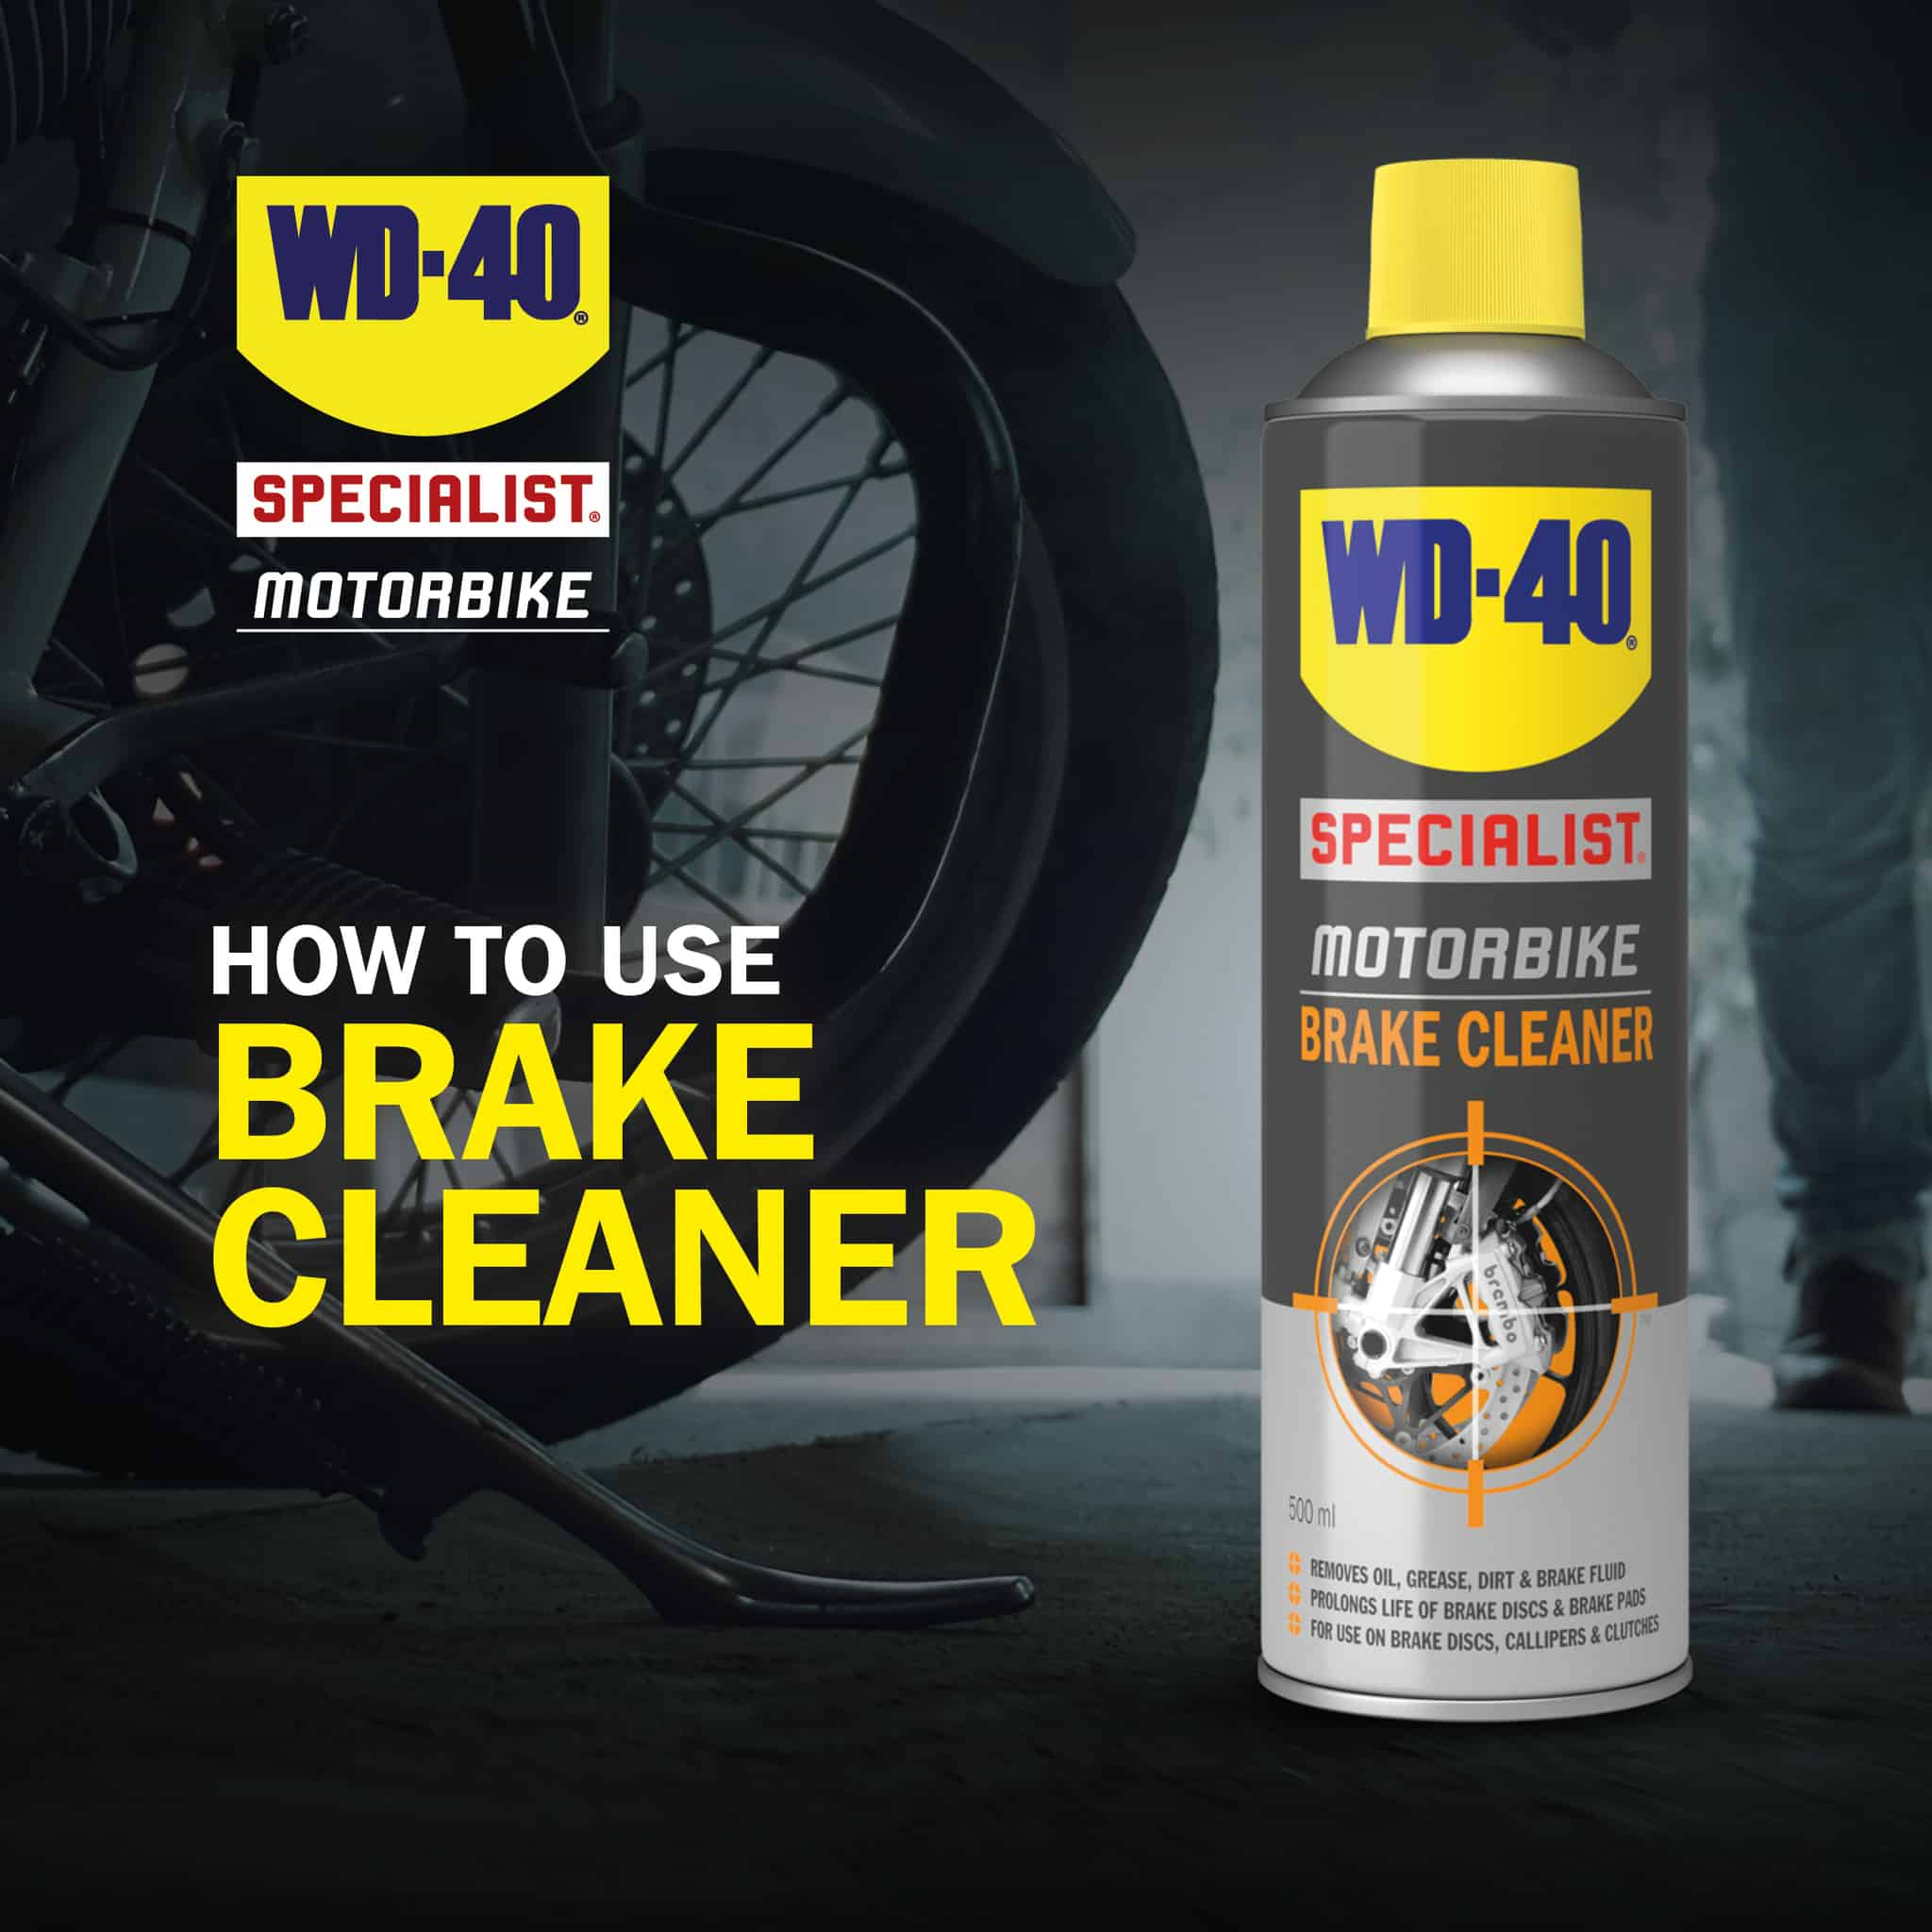 wd40 motorbike brake cleaner how to use part 1